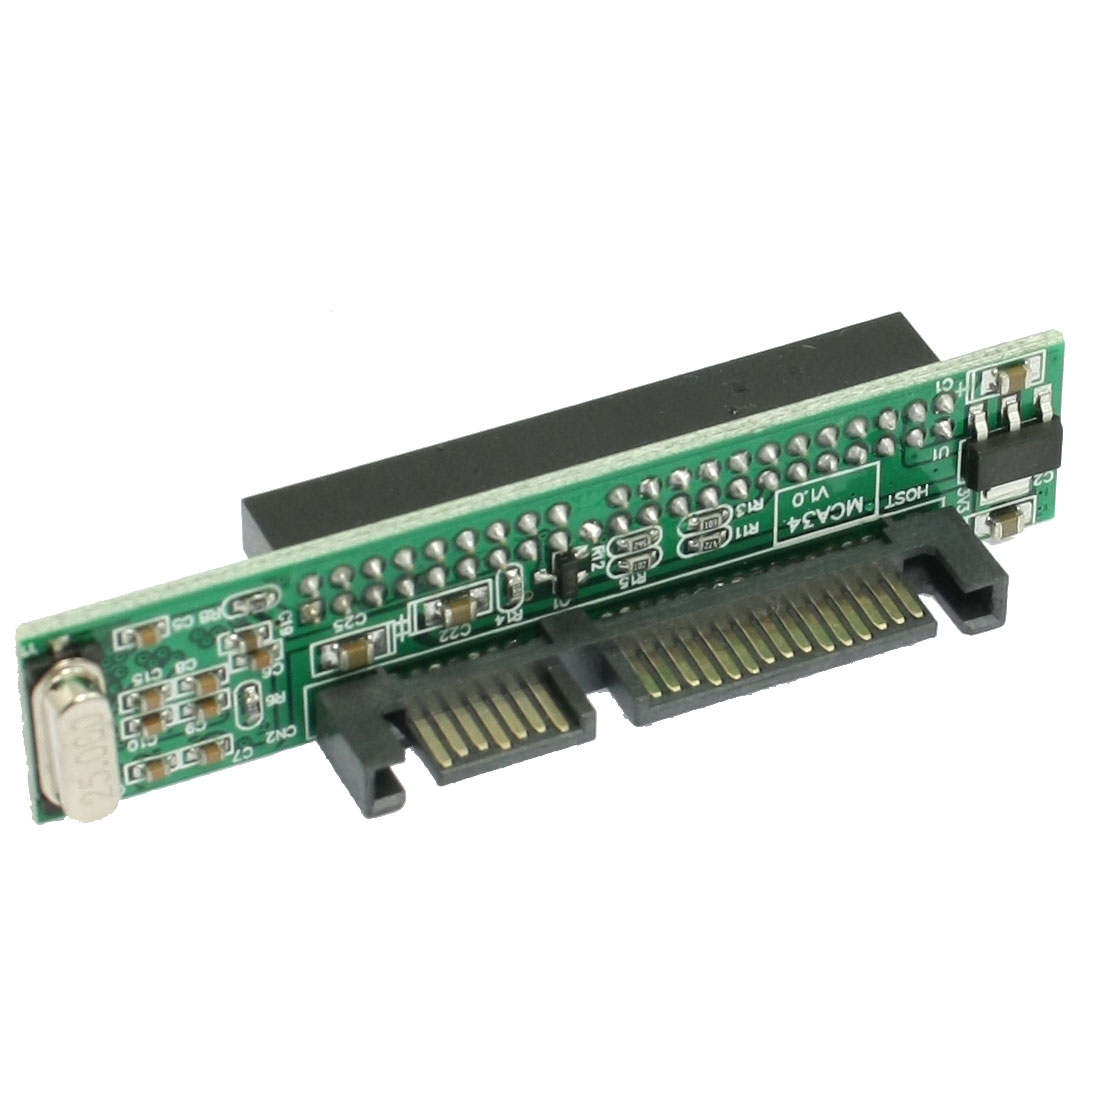 SATA Male to 44 Pin IDE Female Motherboard Converter Adapter